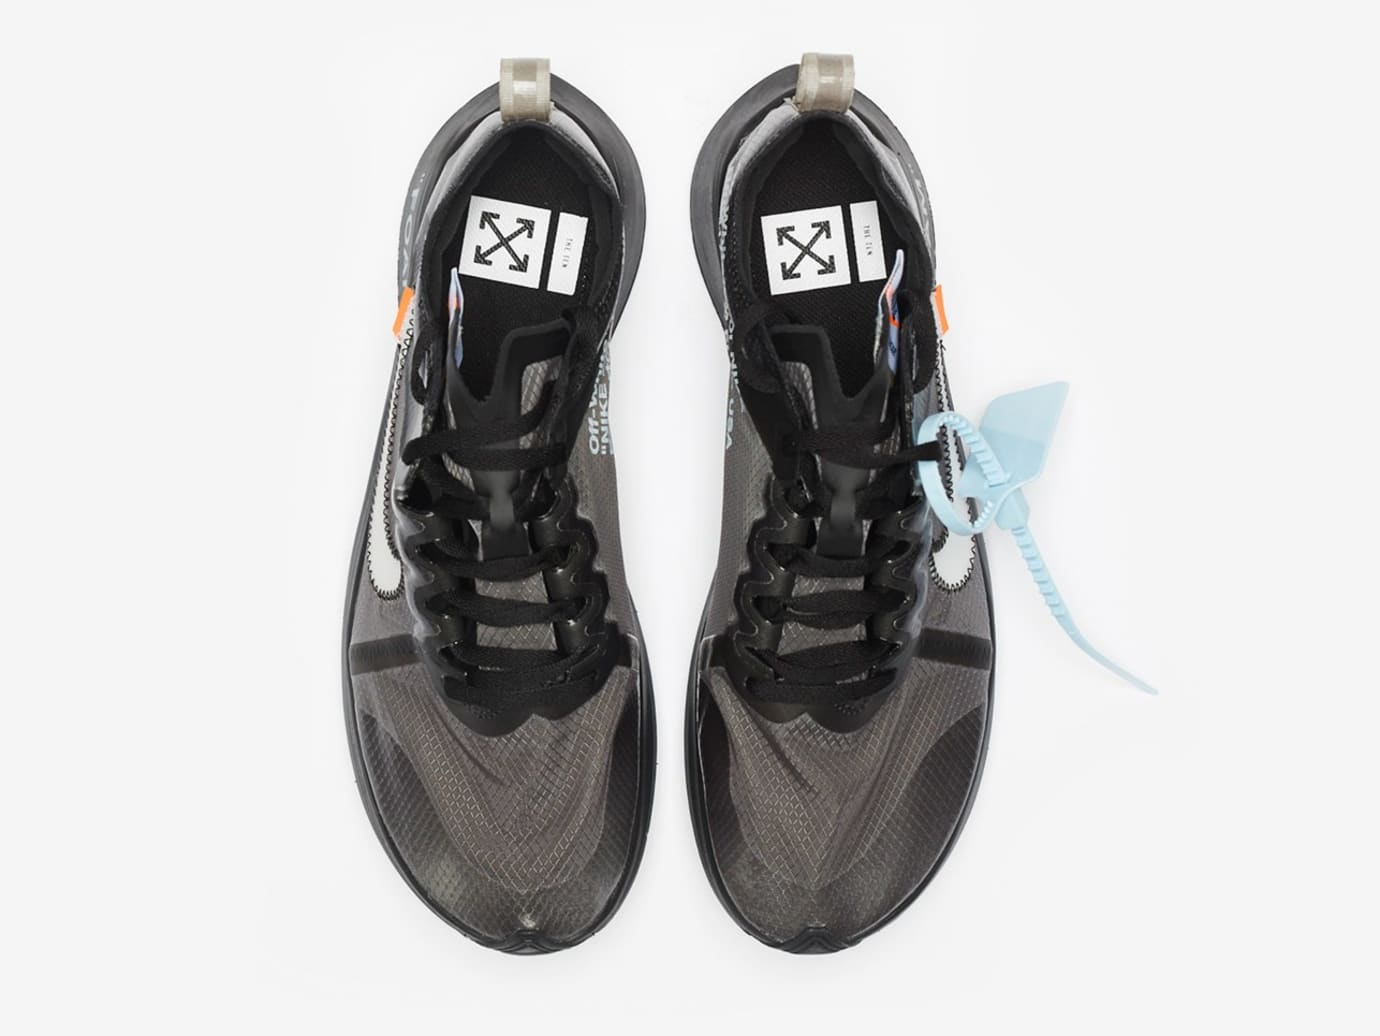 new arrivals cbad6 fad40 Image via Sneakernstuff Off-White x Nike Zoom Fly SP AJ4588-001  Black White -